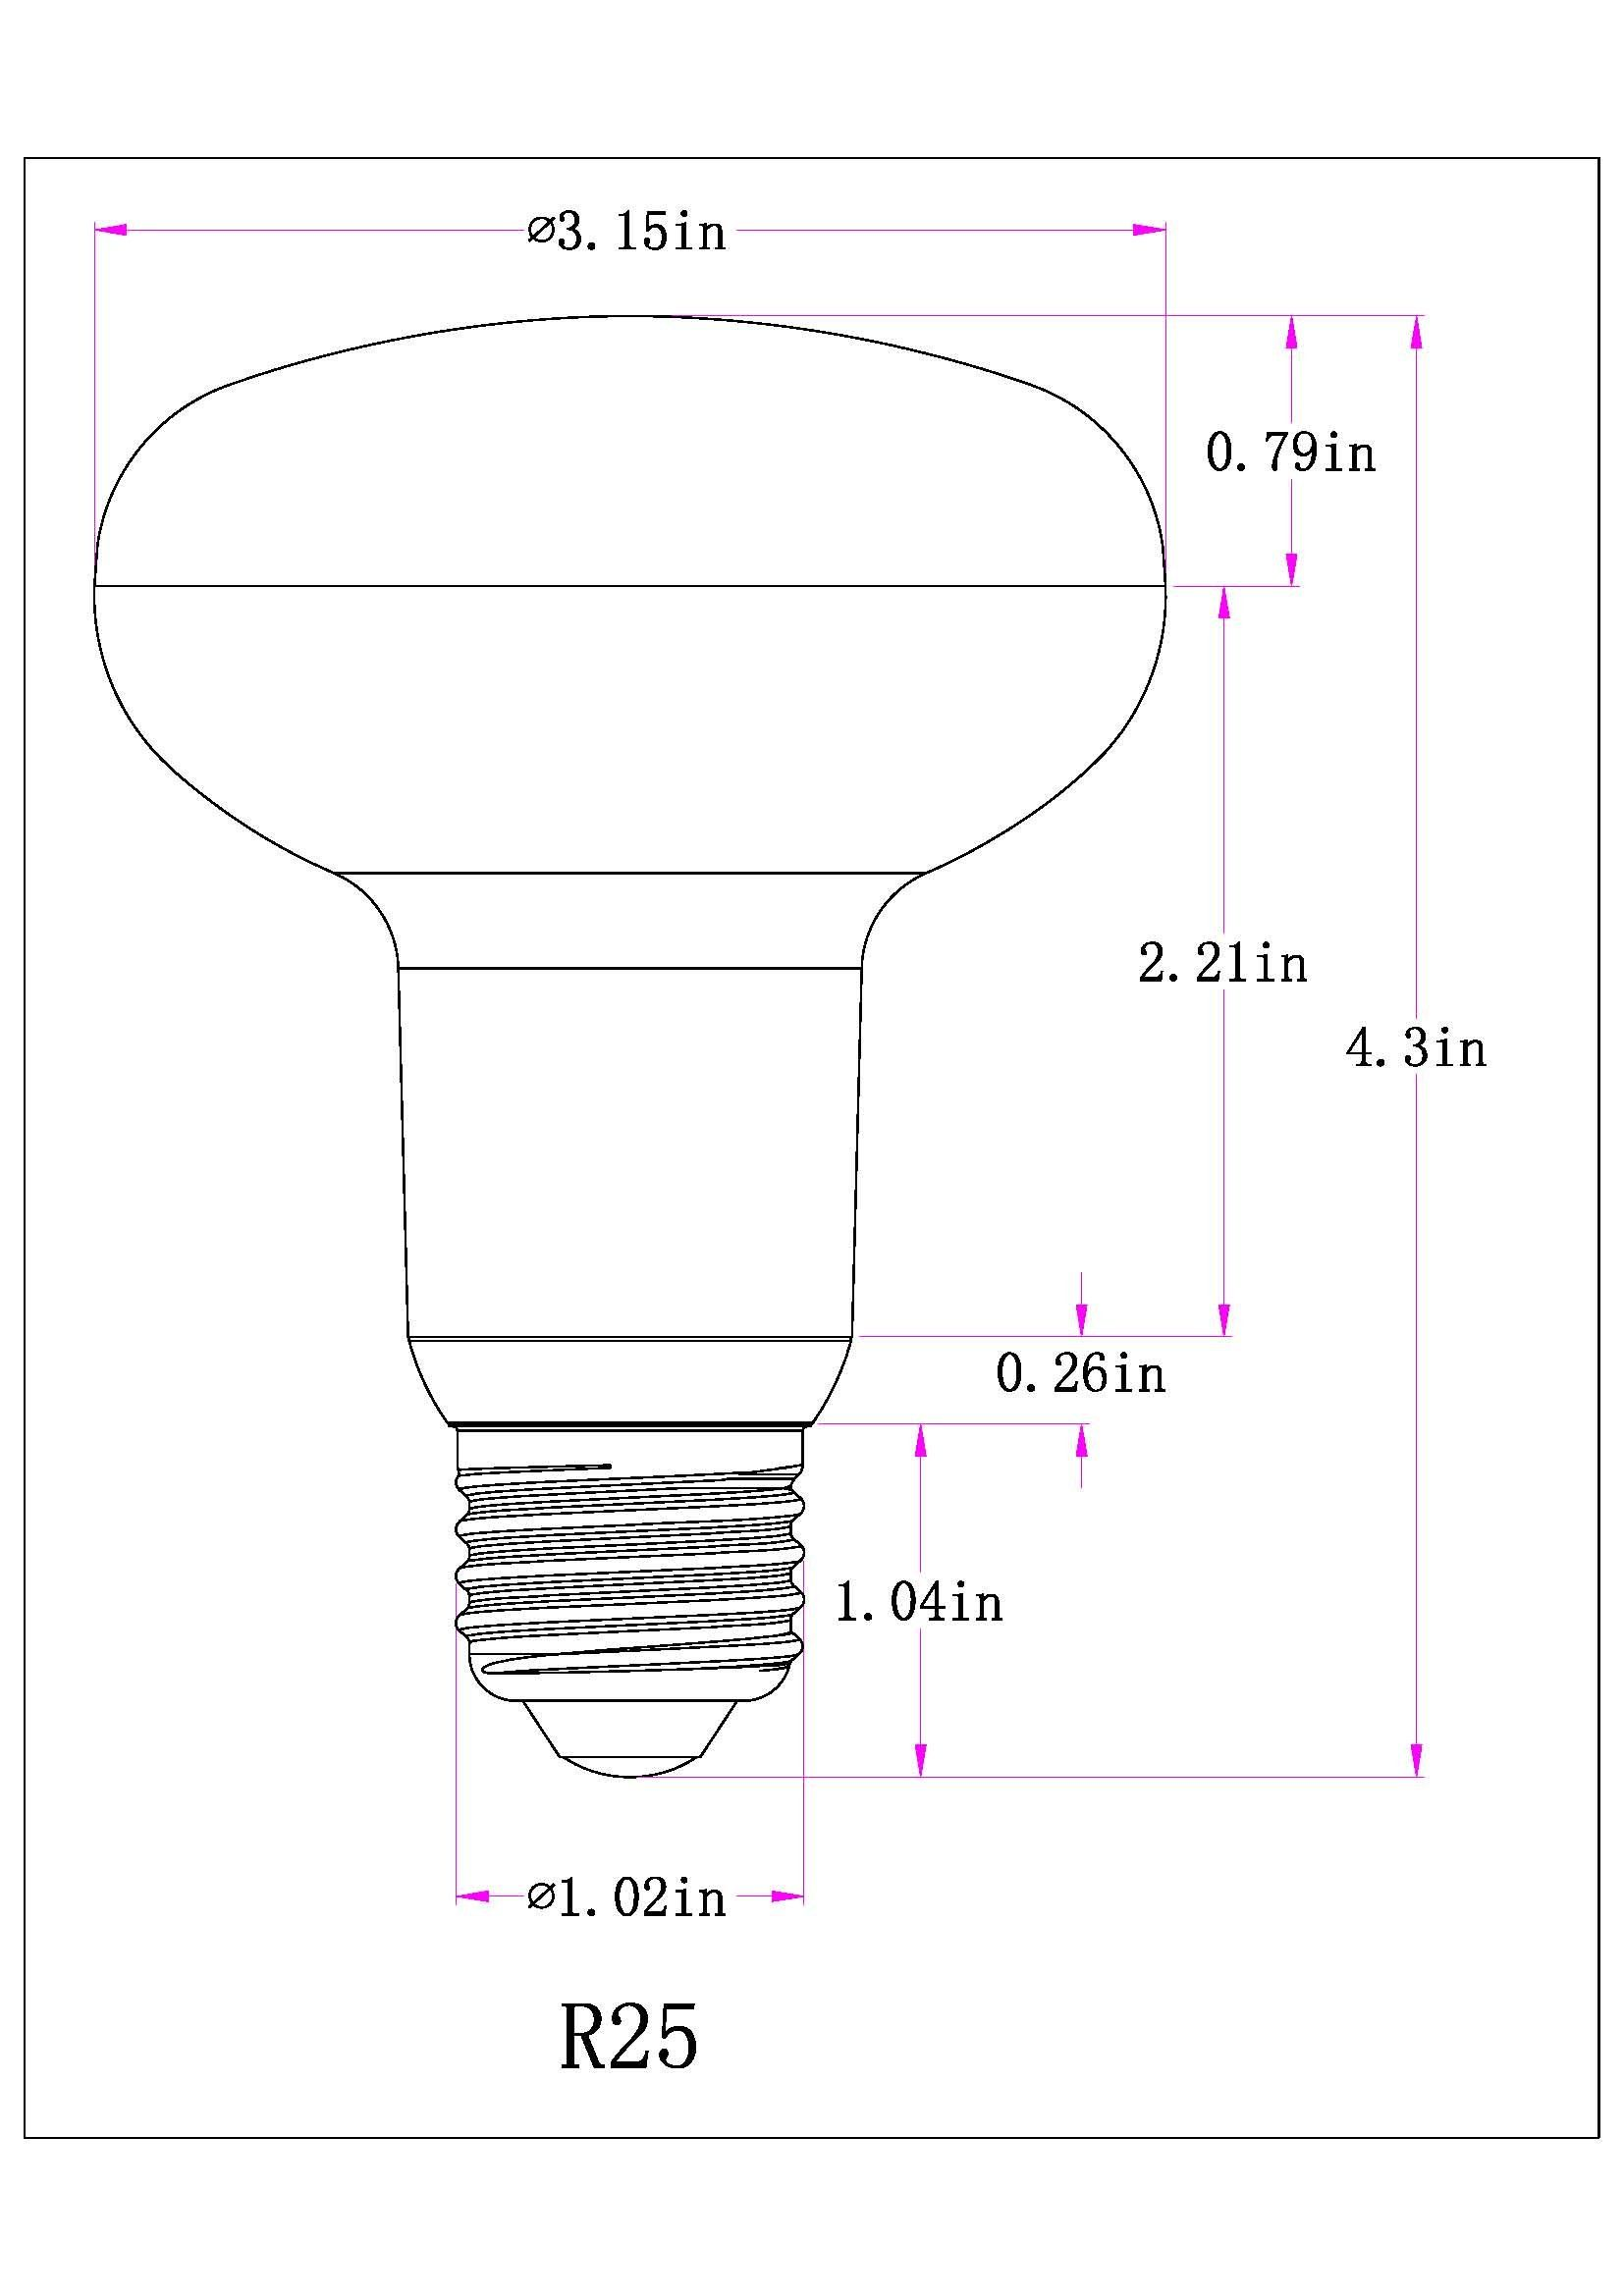 hight resolution of 1 pack 12w r25 dimmable led flood light bulbs e26 medium base 100w incandescent bulbs equivalent high lumens 1200lmwarm white 2700k led recessed lighting